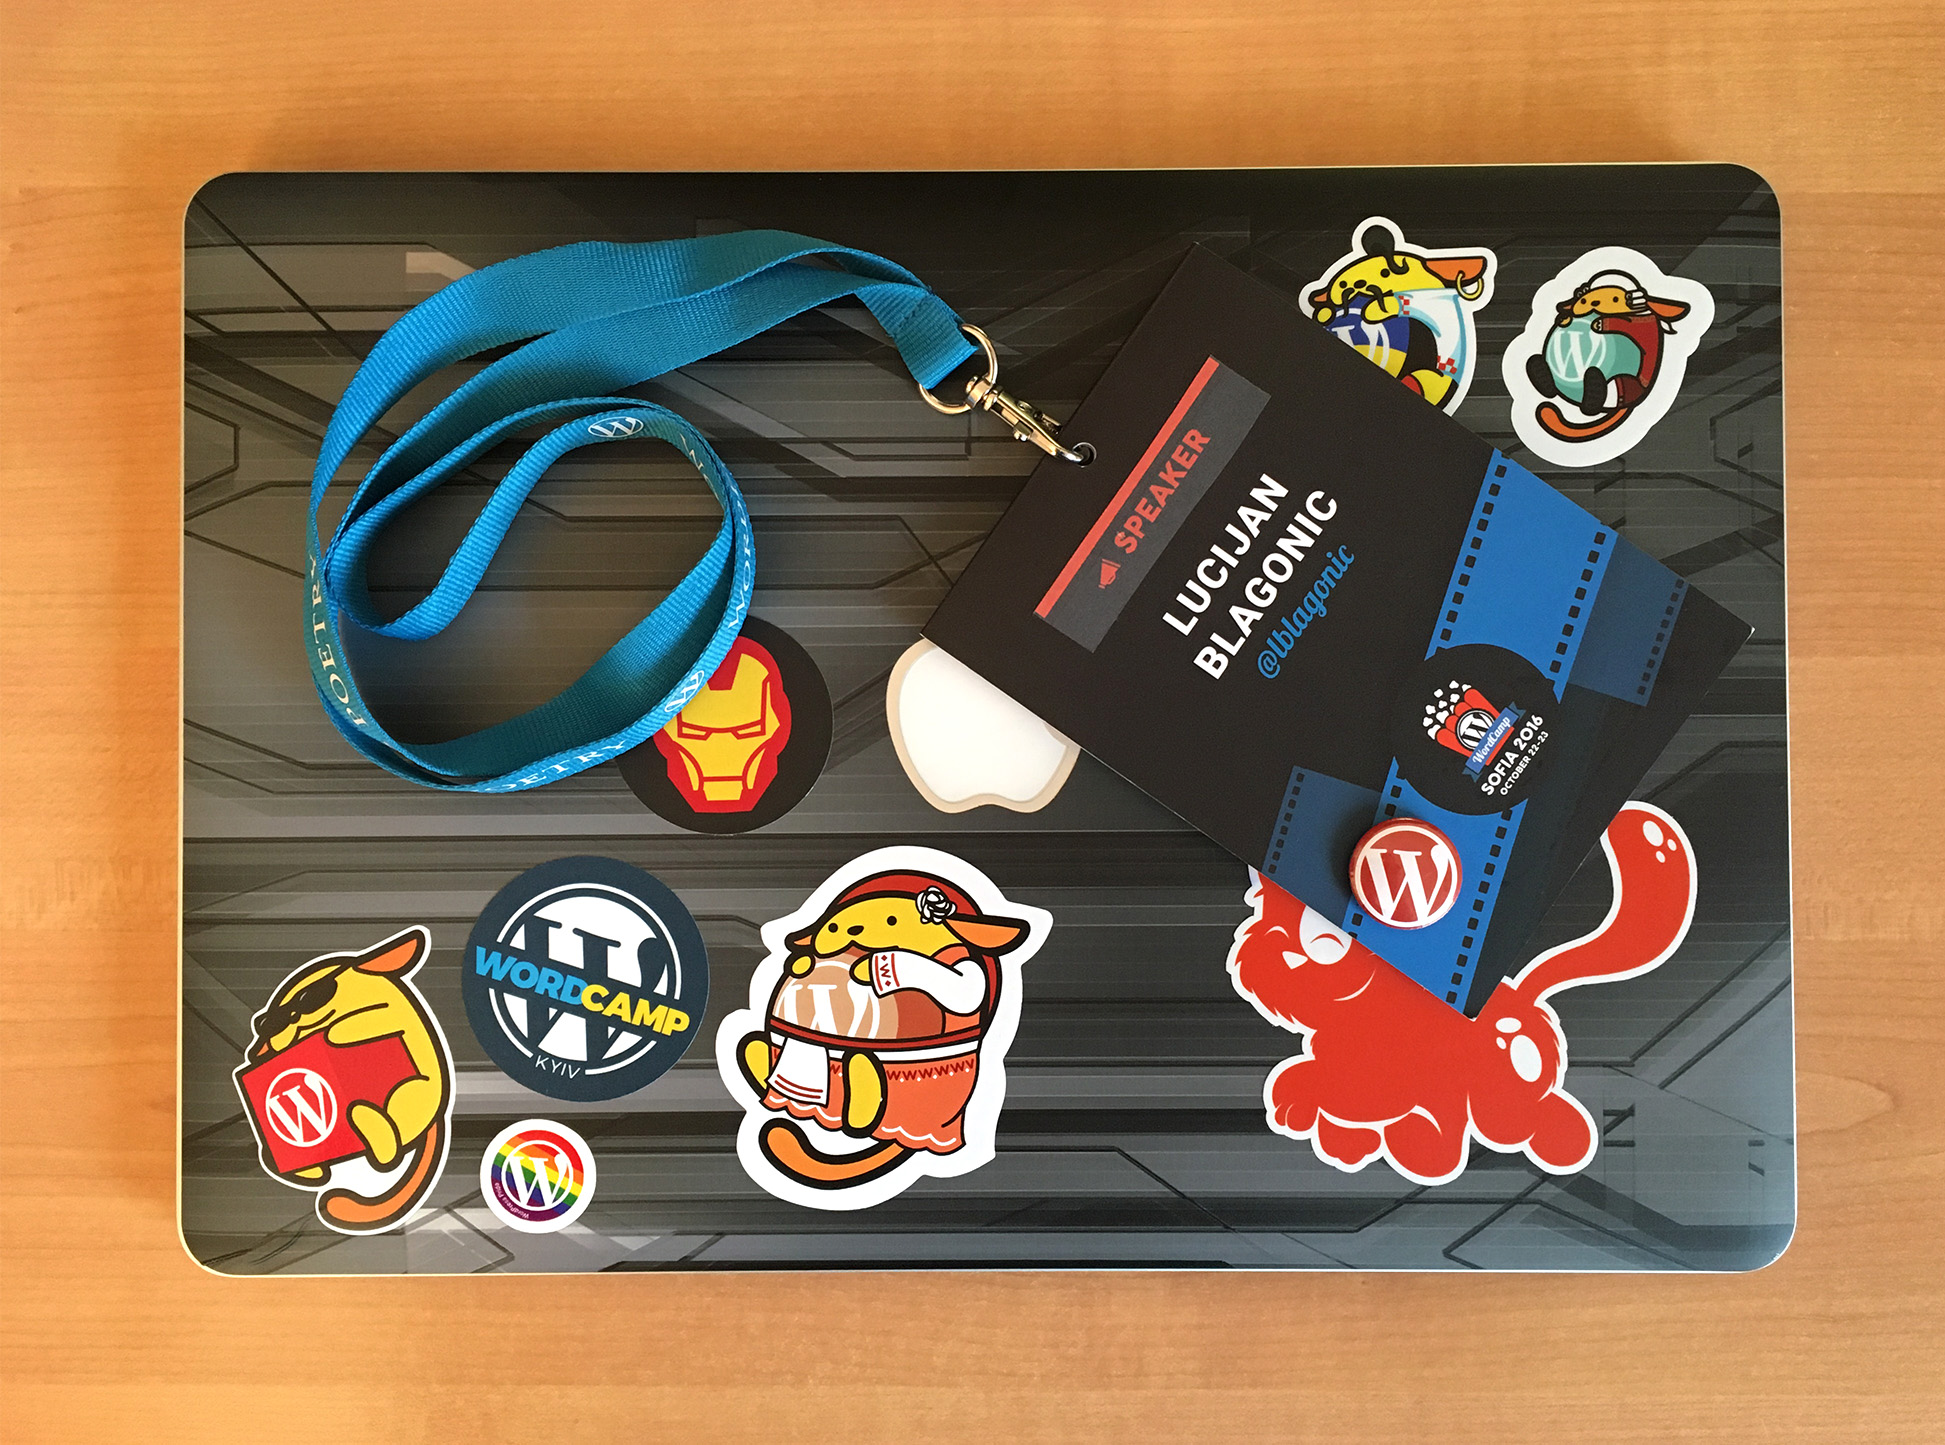 WordCamp Sofia 2016 lanyard and sticker